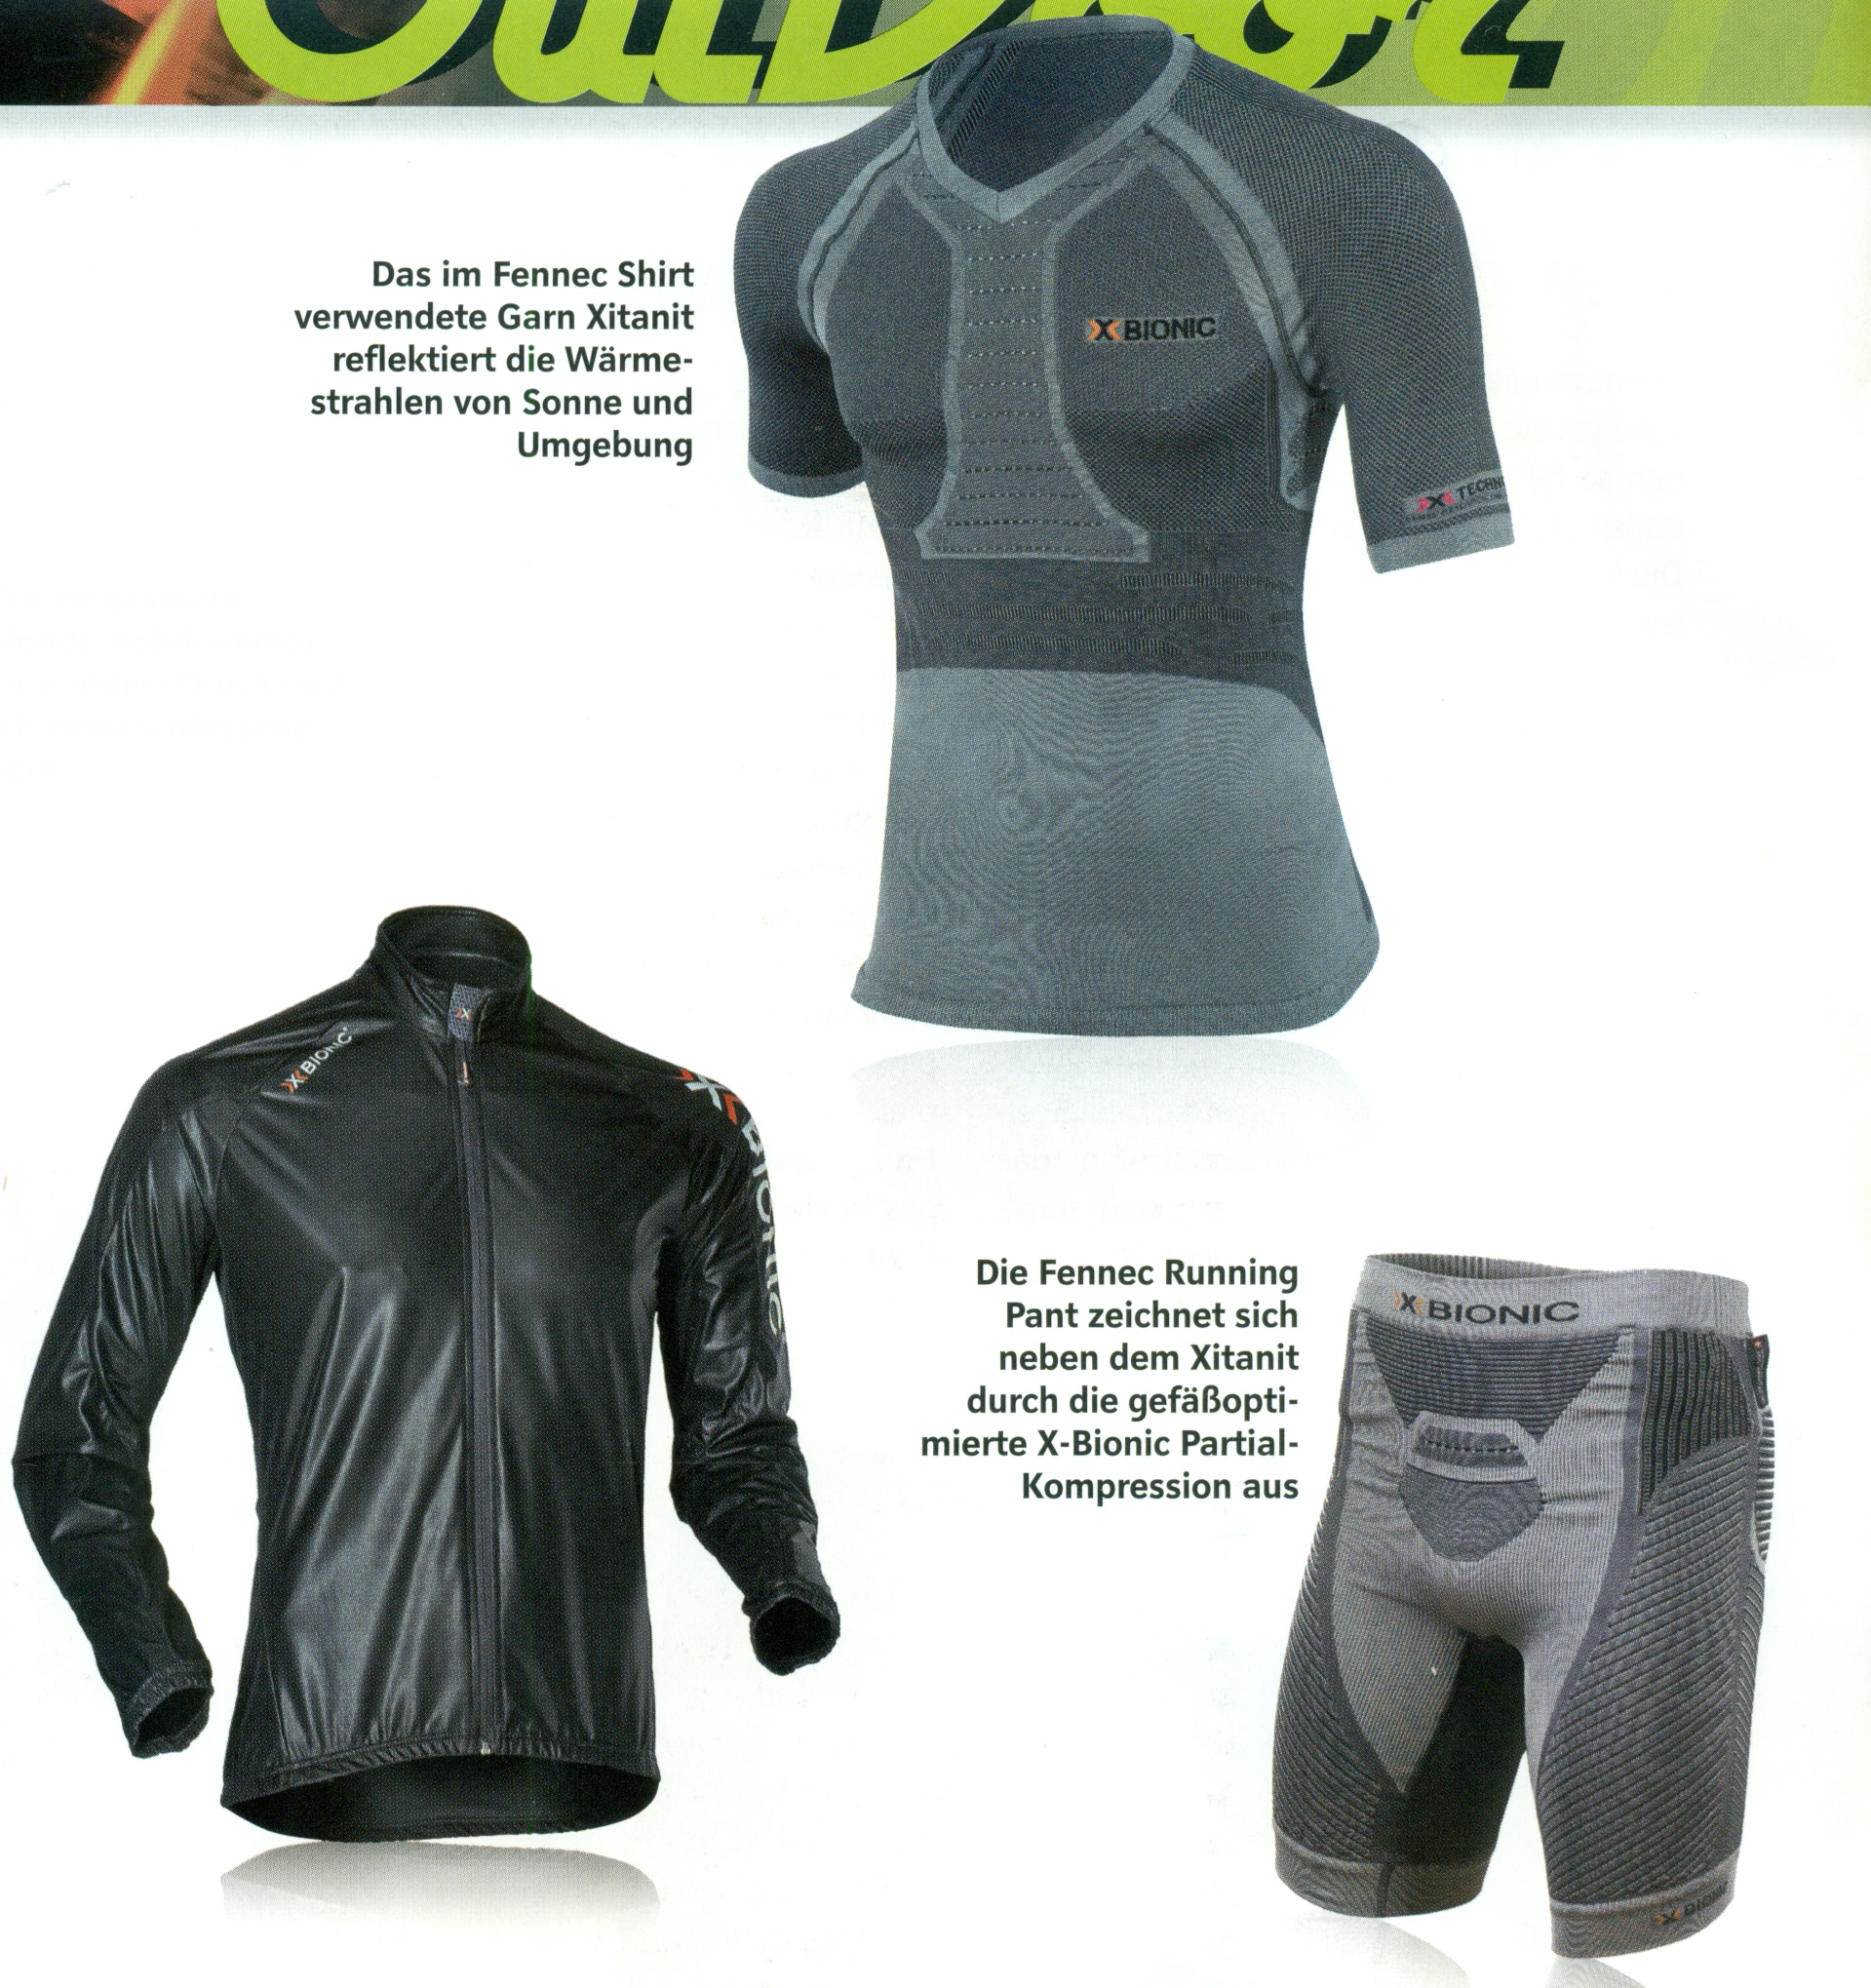 X Technology Fennec Shirt Sphere Wind jacket Fennec Running Pant